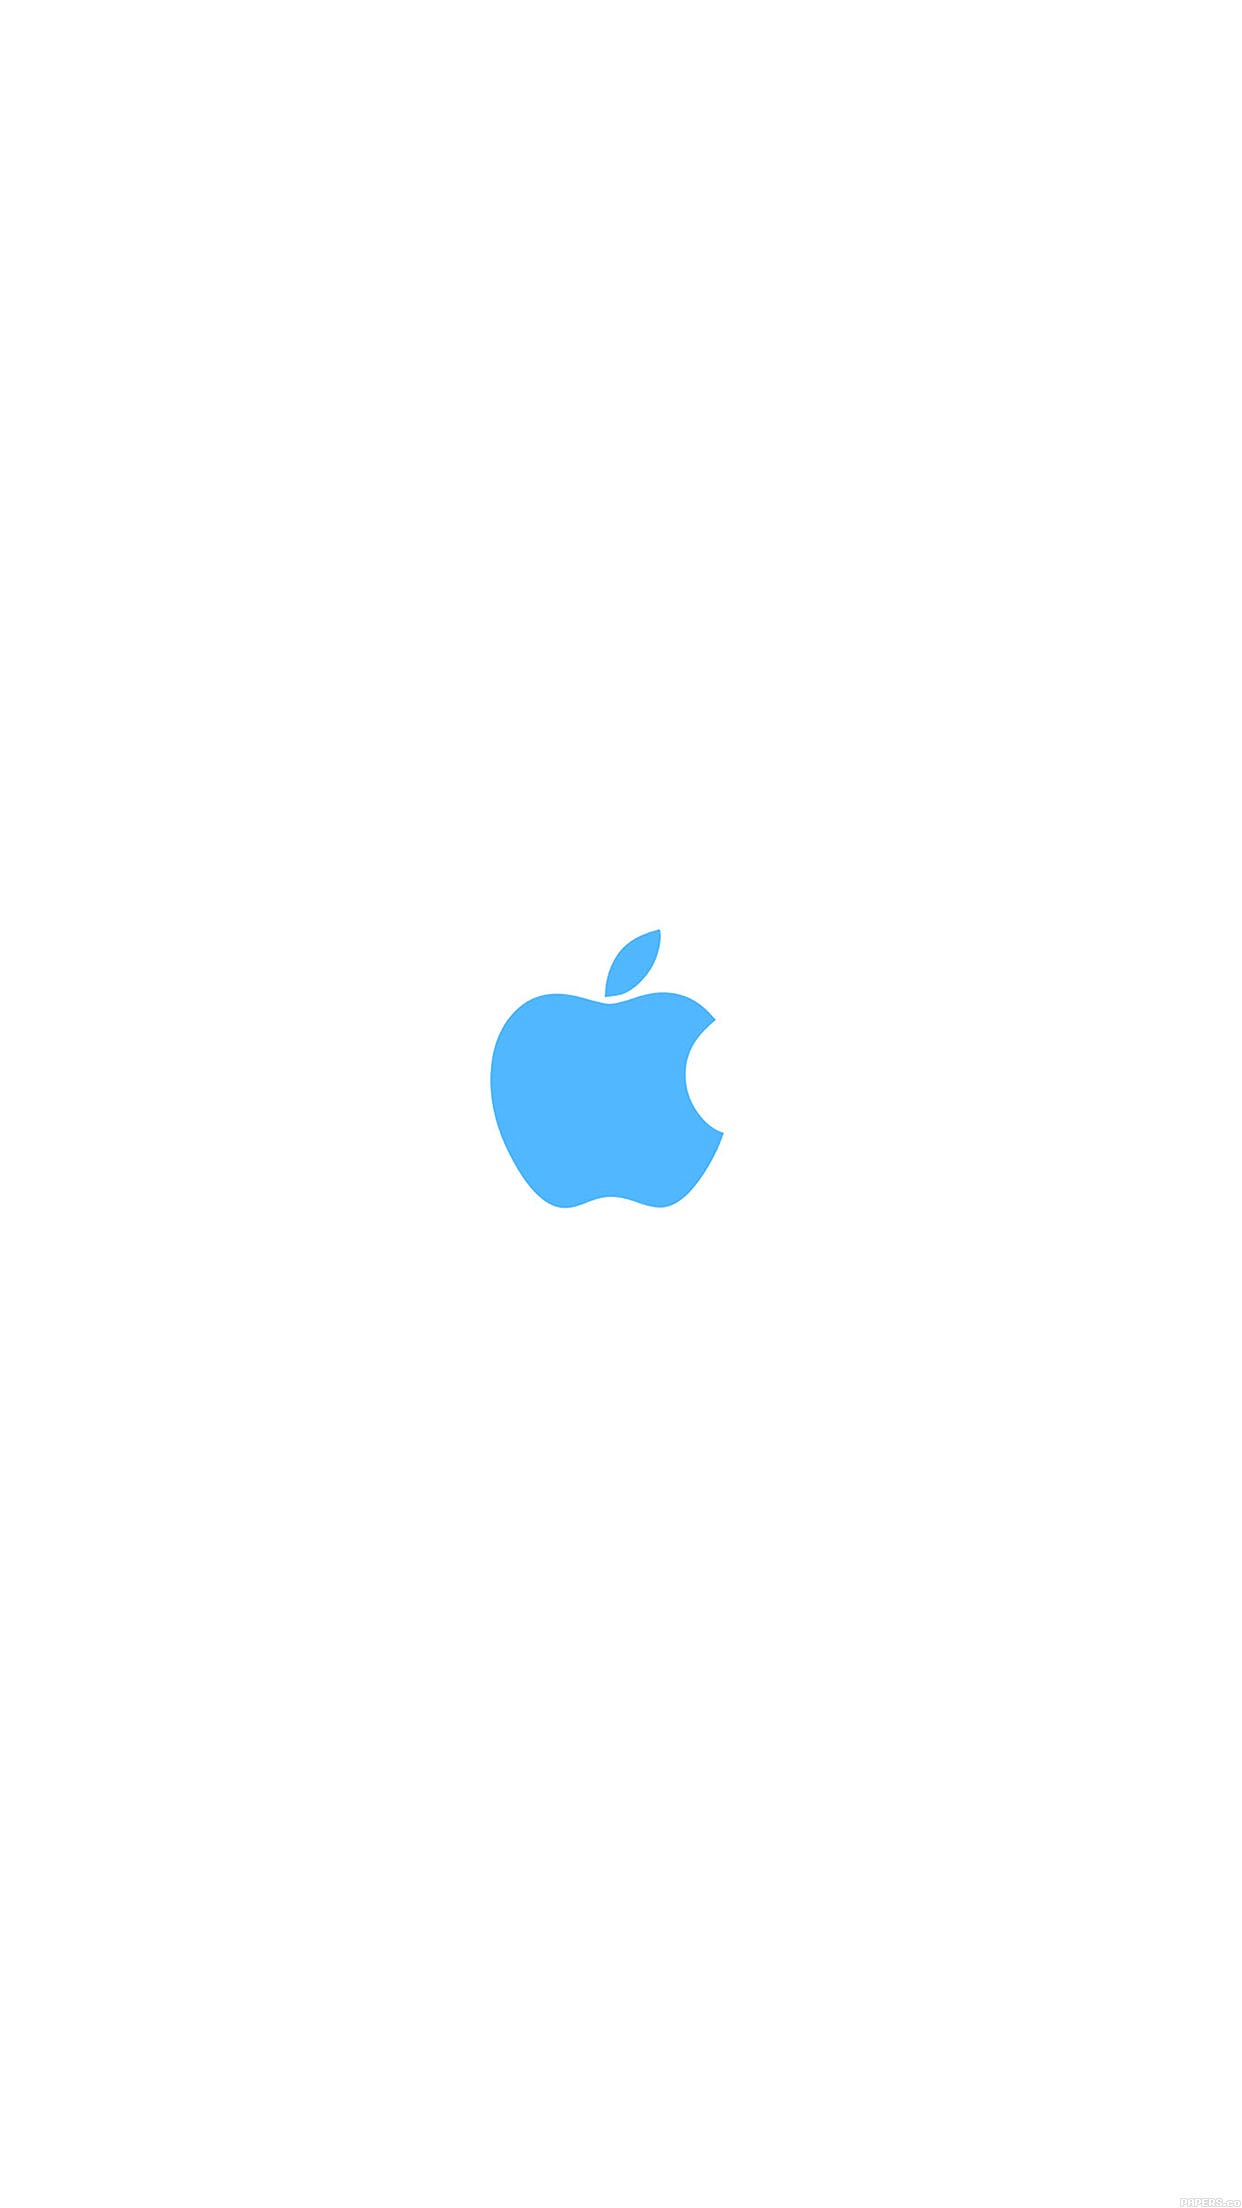 Apple Simple Logo Color Blue Minimal Android Wallpaper